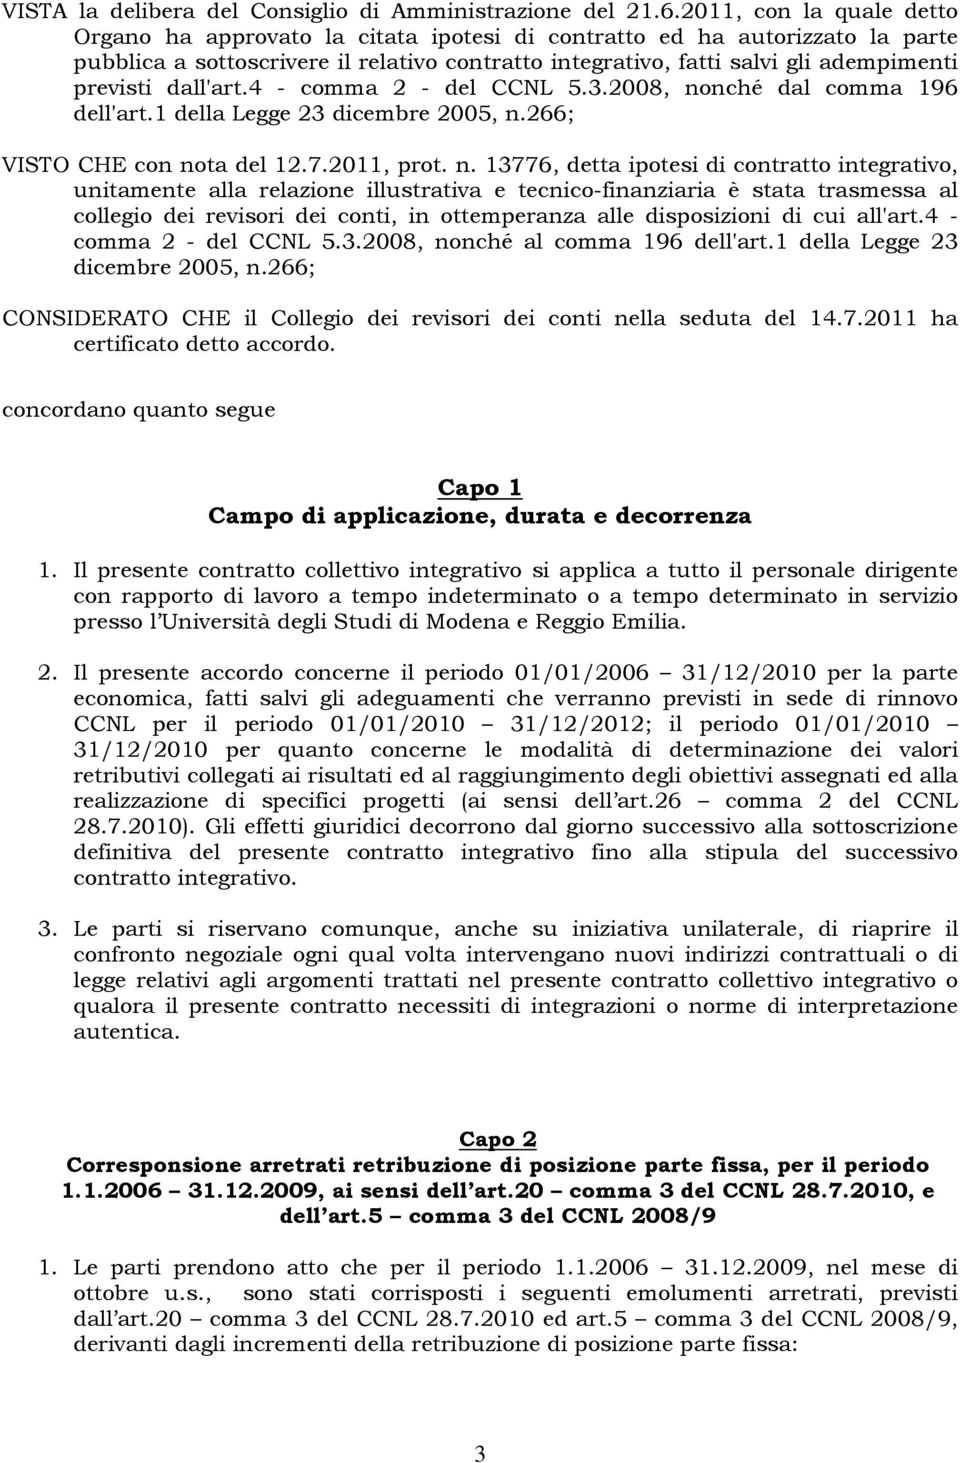 dall'art.4 - comma 2 - del CCNL 5.3.2008, no